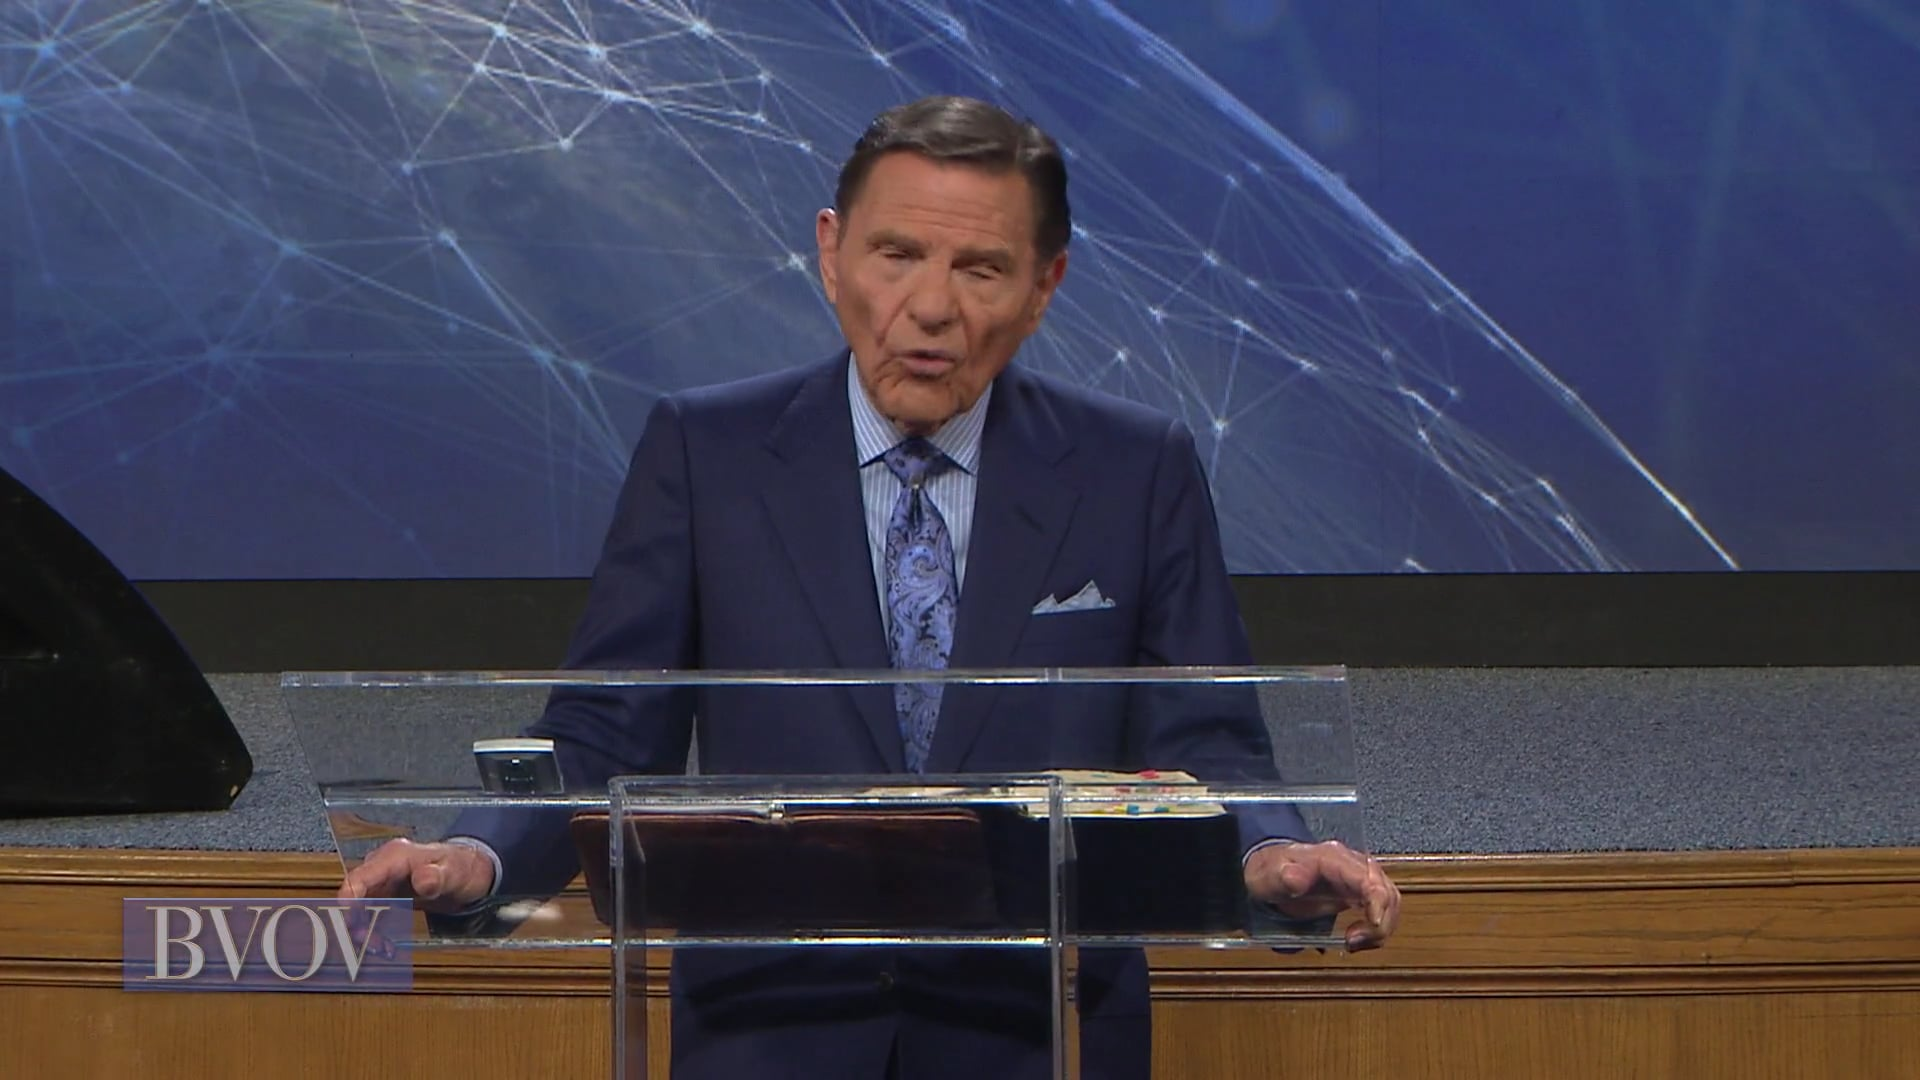 On today's Believer's Voice of Victory, Kenneth Copeland shares how love stops strife in its tracks and brings peace and healing. Get ready to be encouraged. You are more than an overcomer through Jesus, because the Greater One is at work in you.